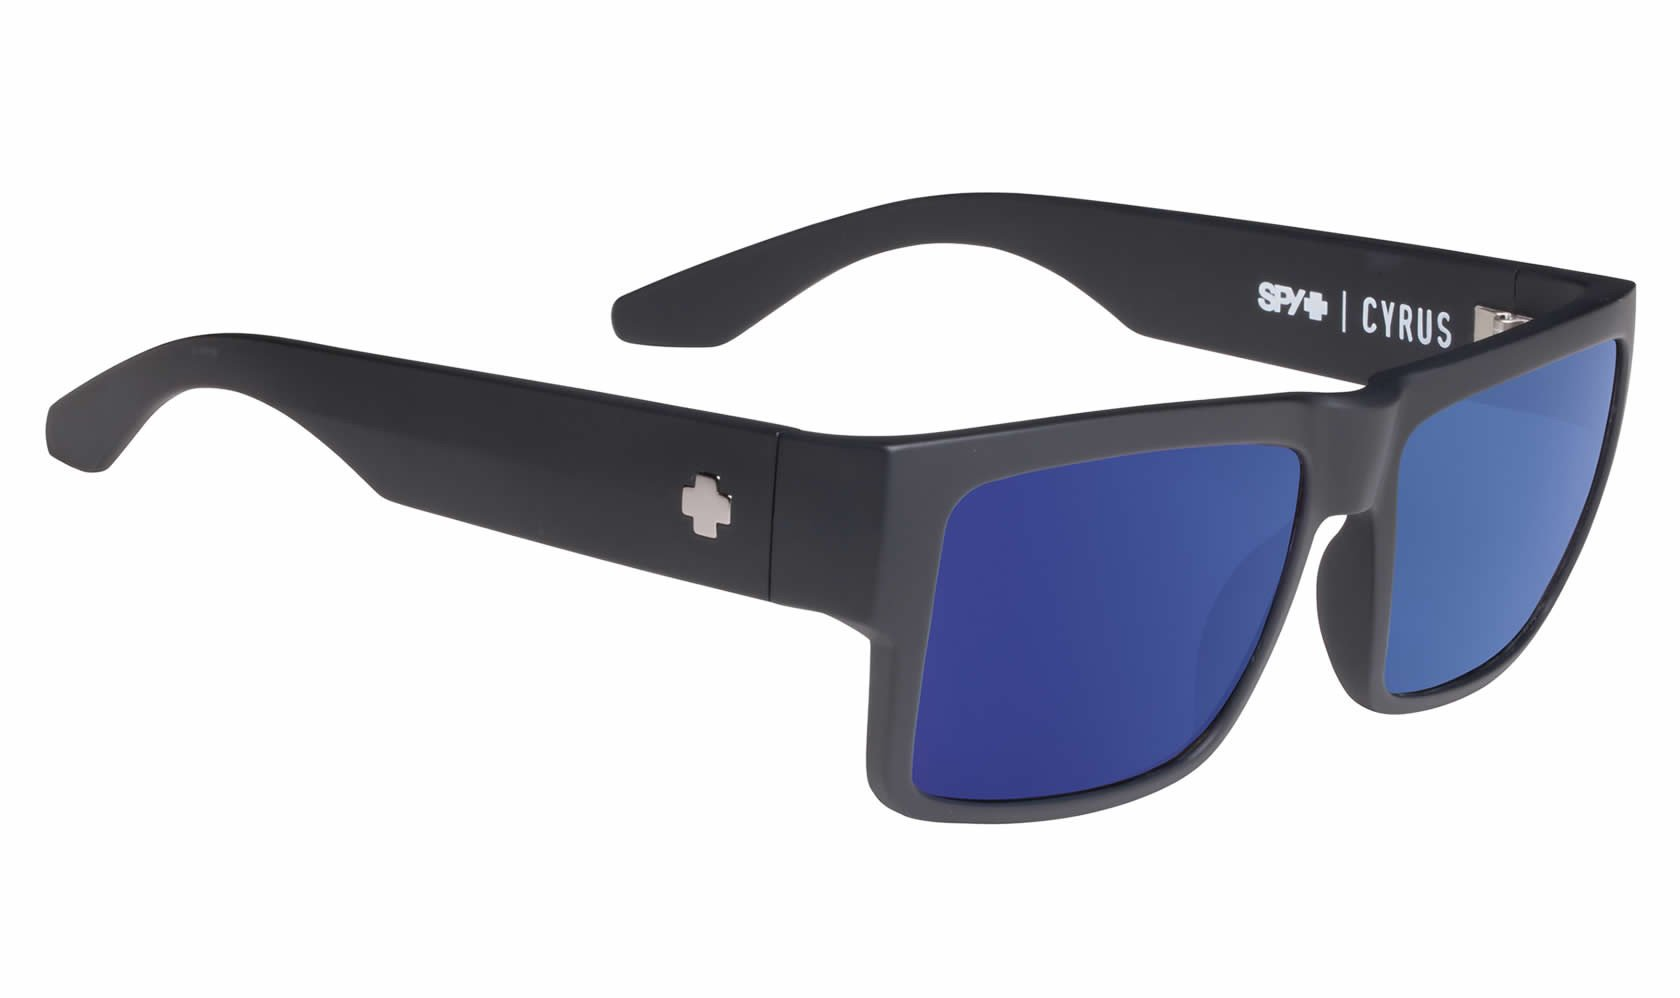 13e5e329c4a ... Picture 2 of 7  Picture 3 of 7  Picture 4 of 7. 4. Cyrus Replacement  Lenses Polarized Blue Mirror by SEEK fits SPY OPTICS